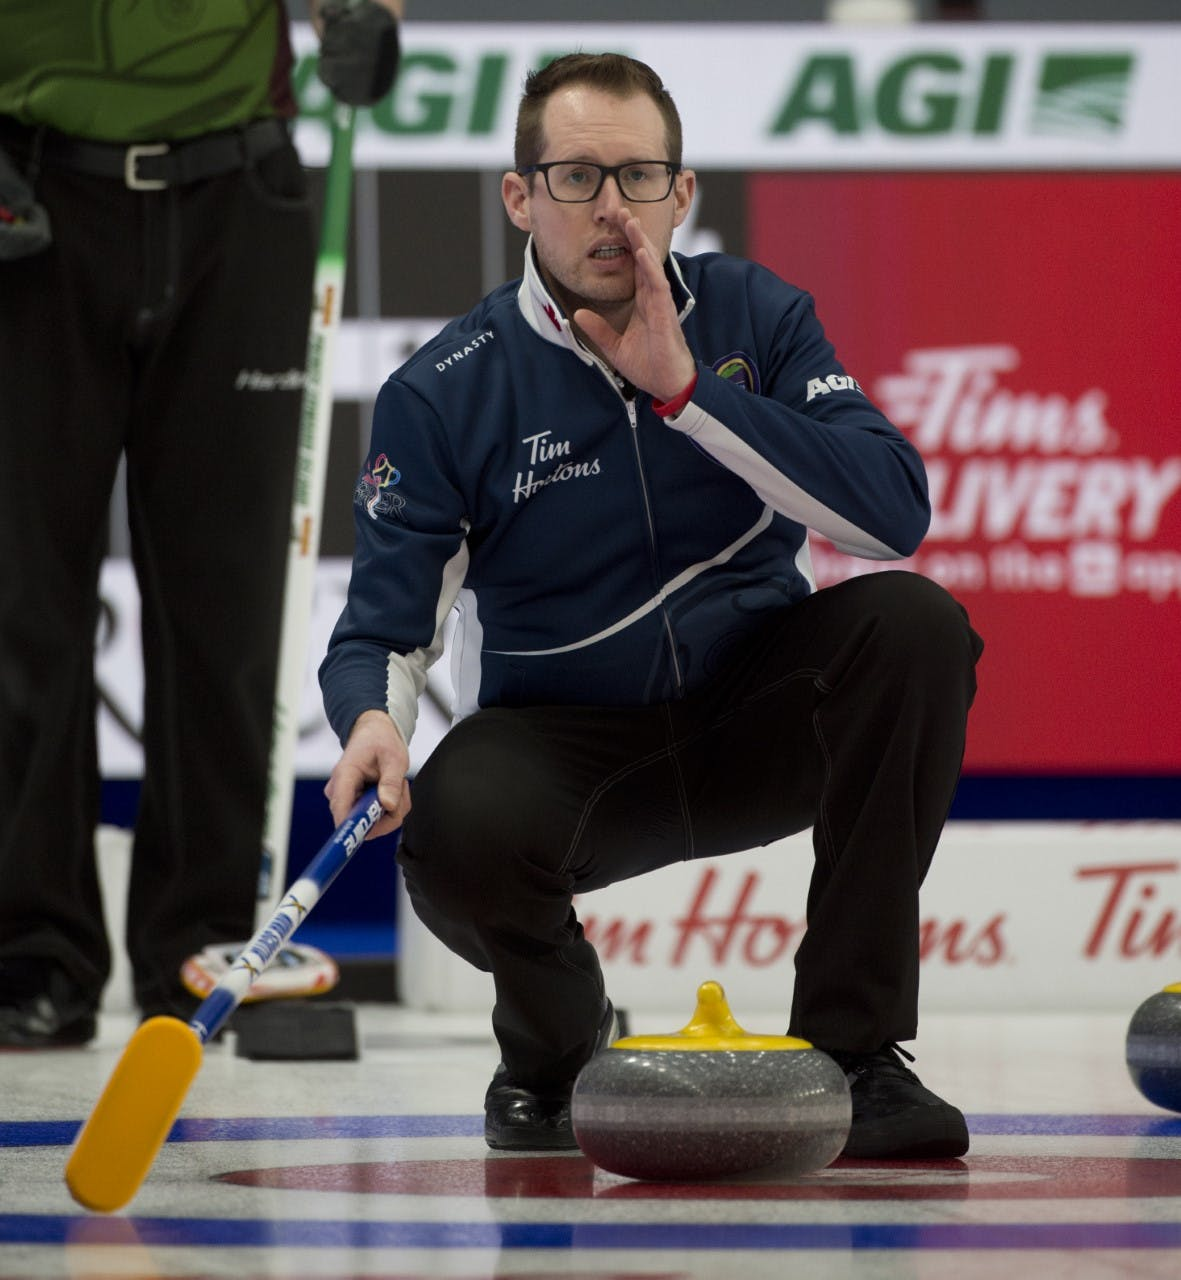 Ontario's Scott McDonald, who has joined the Nova Scotia rink as skip at the Tim Hortons Brier in Calgary, yells instruction to his team during Draw 3 play Saturday. Nova Scotia defeated P.E.I. 11-4 to even its record at 1-1. - Michael Burns / Curling Canada